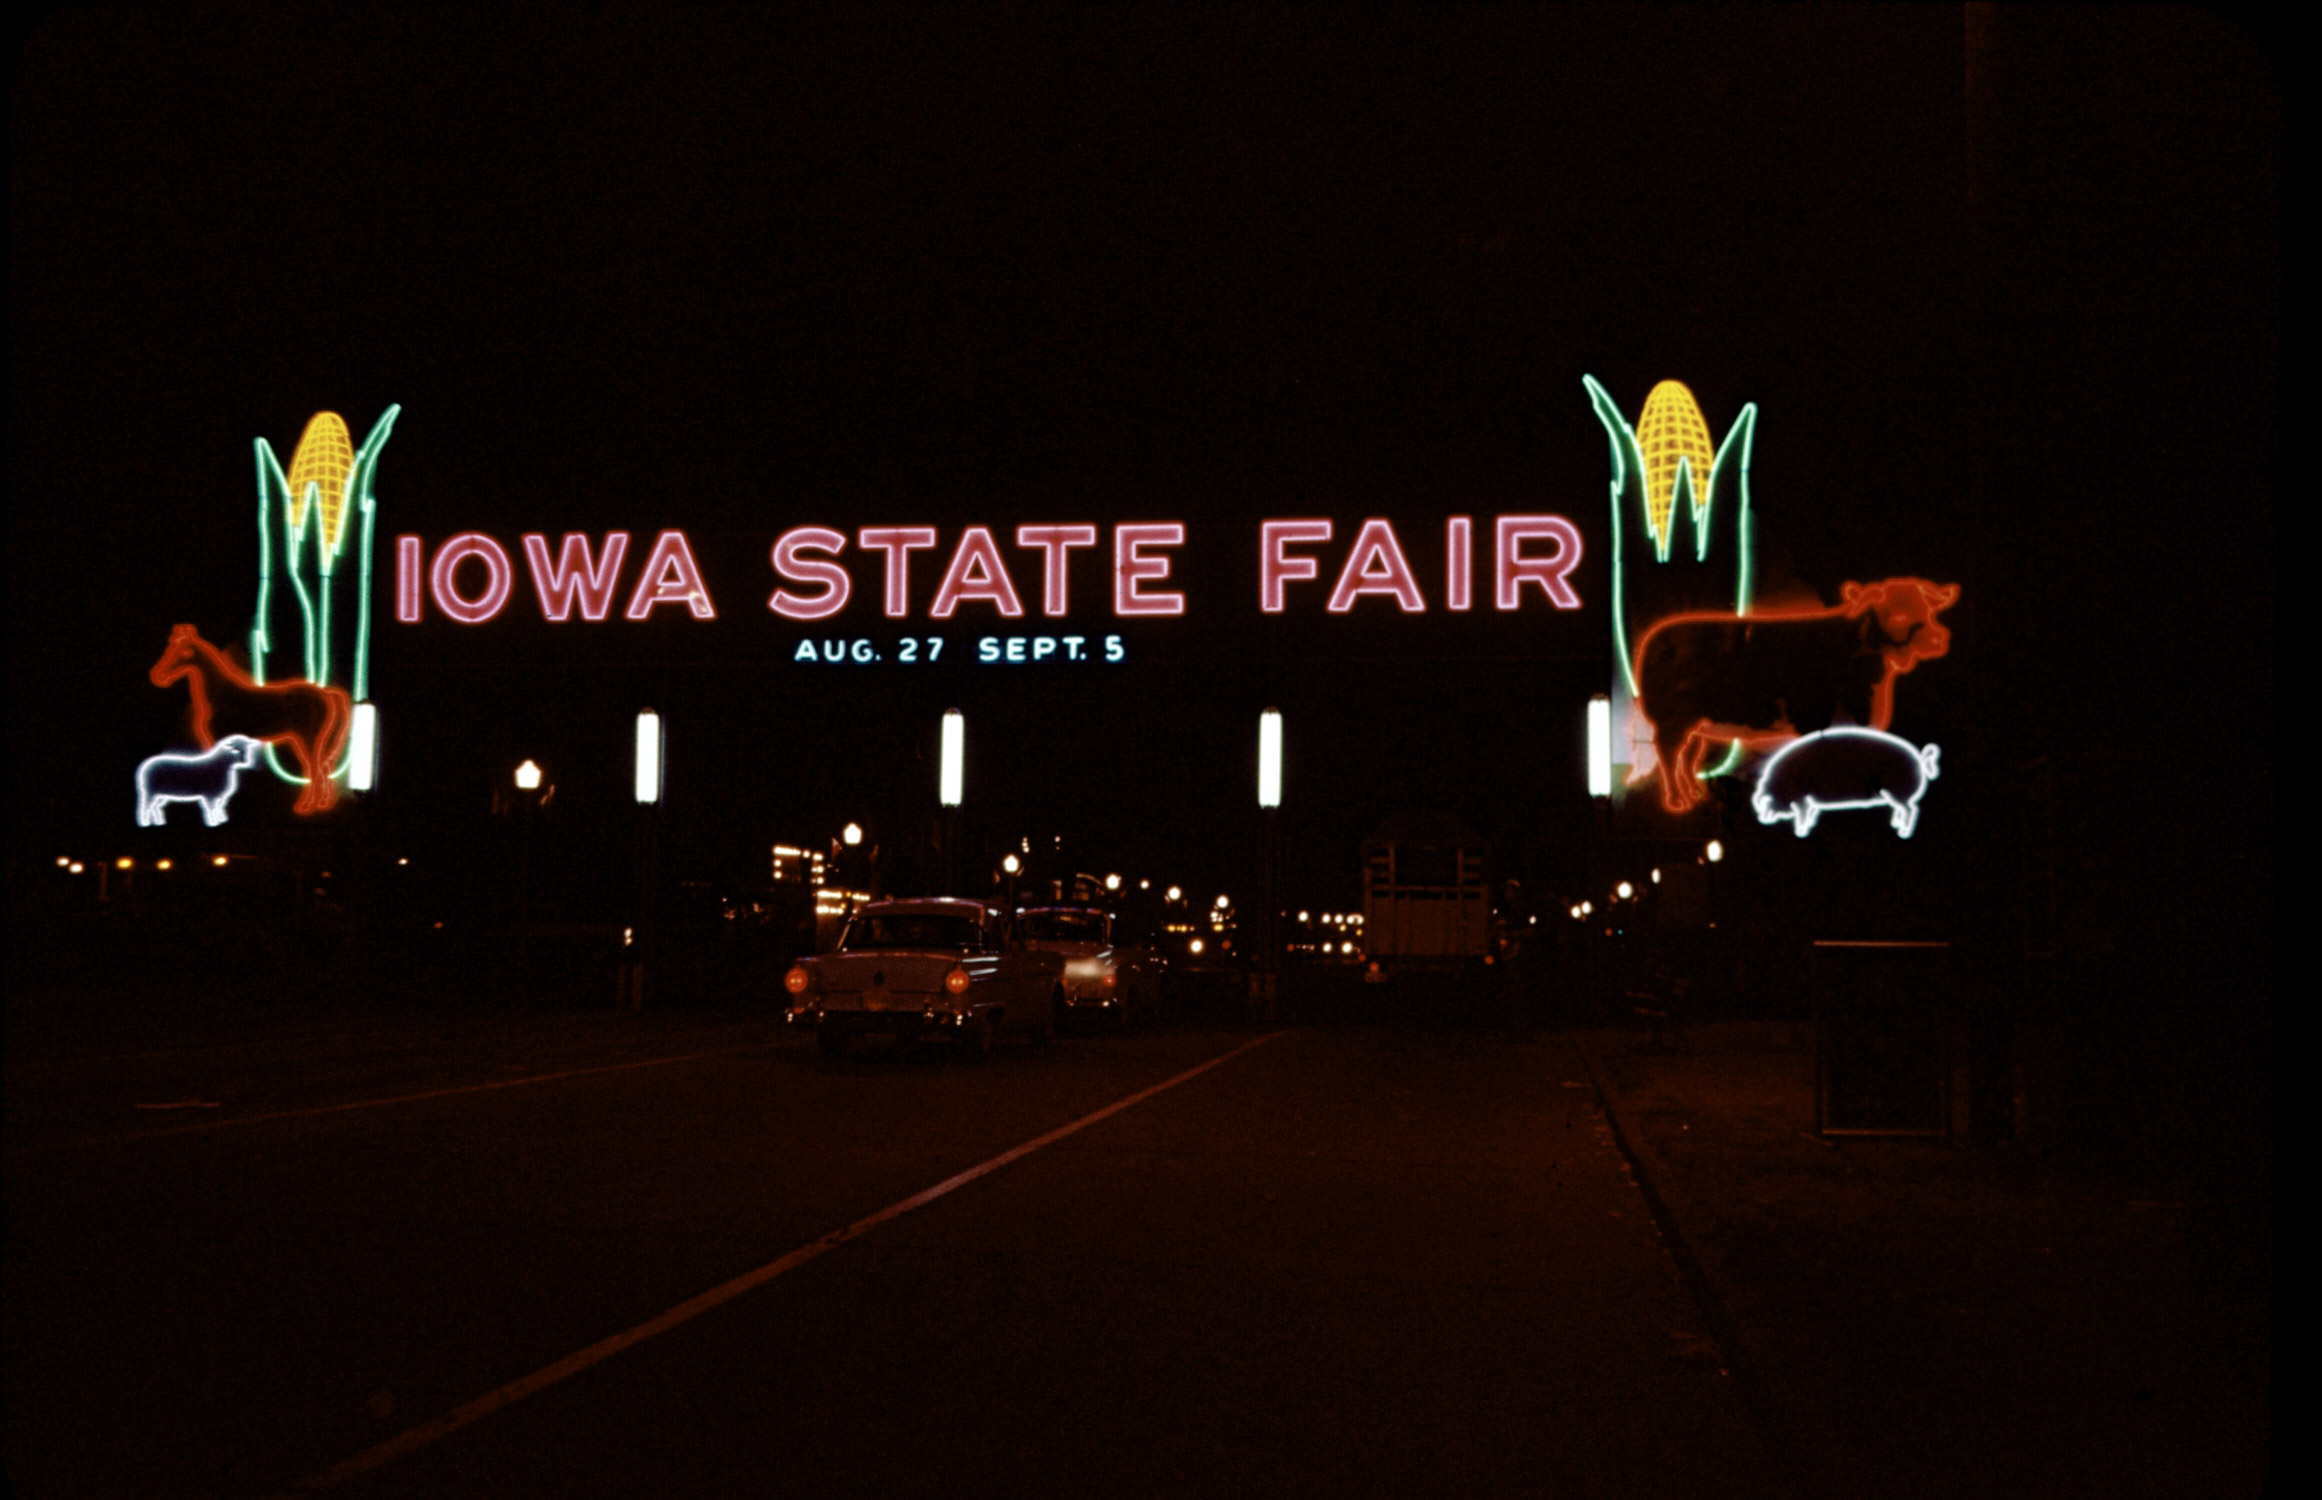 A neon sign lights up the entrance to the Iowa State Fair, 1955.